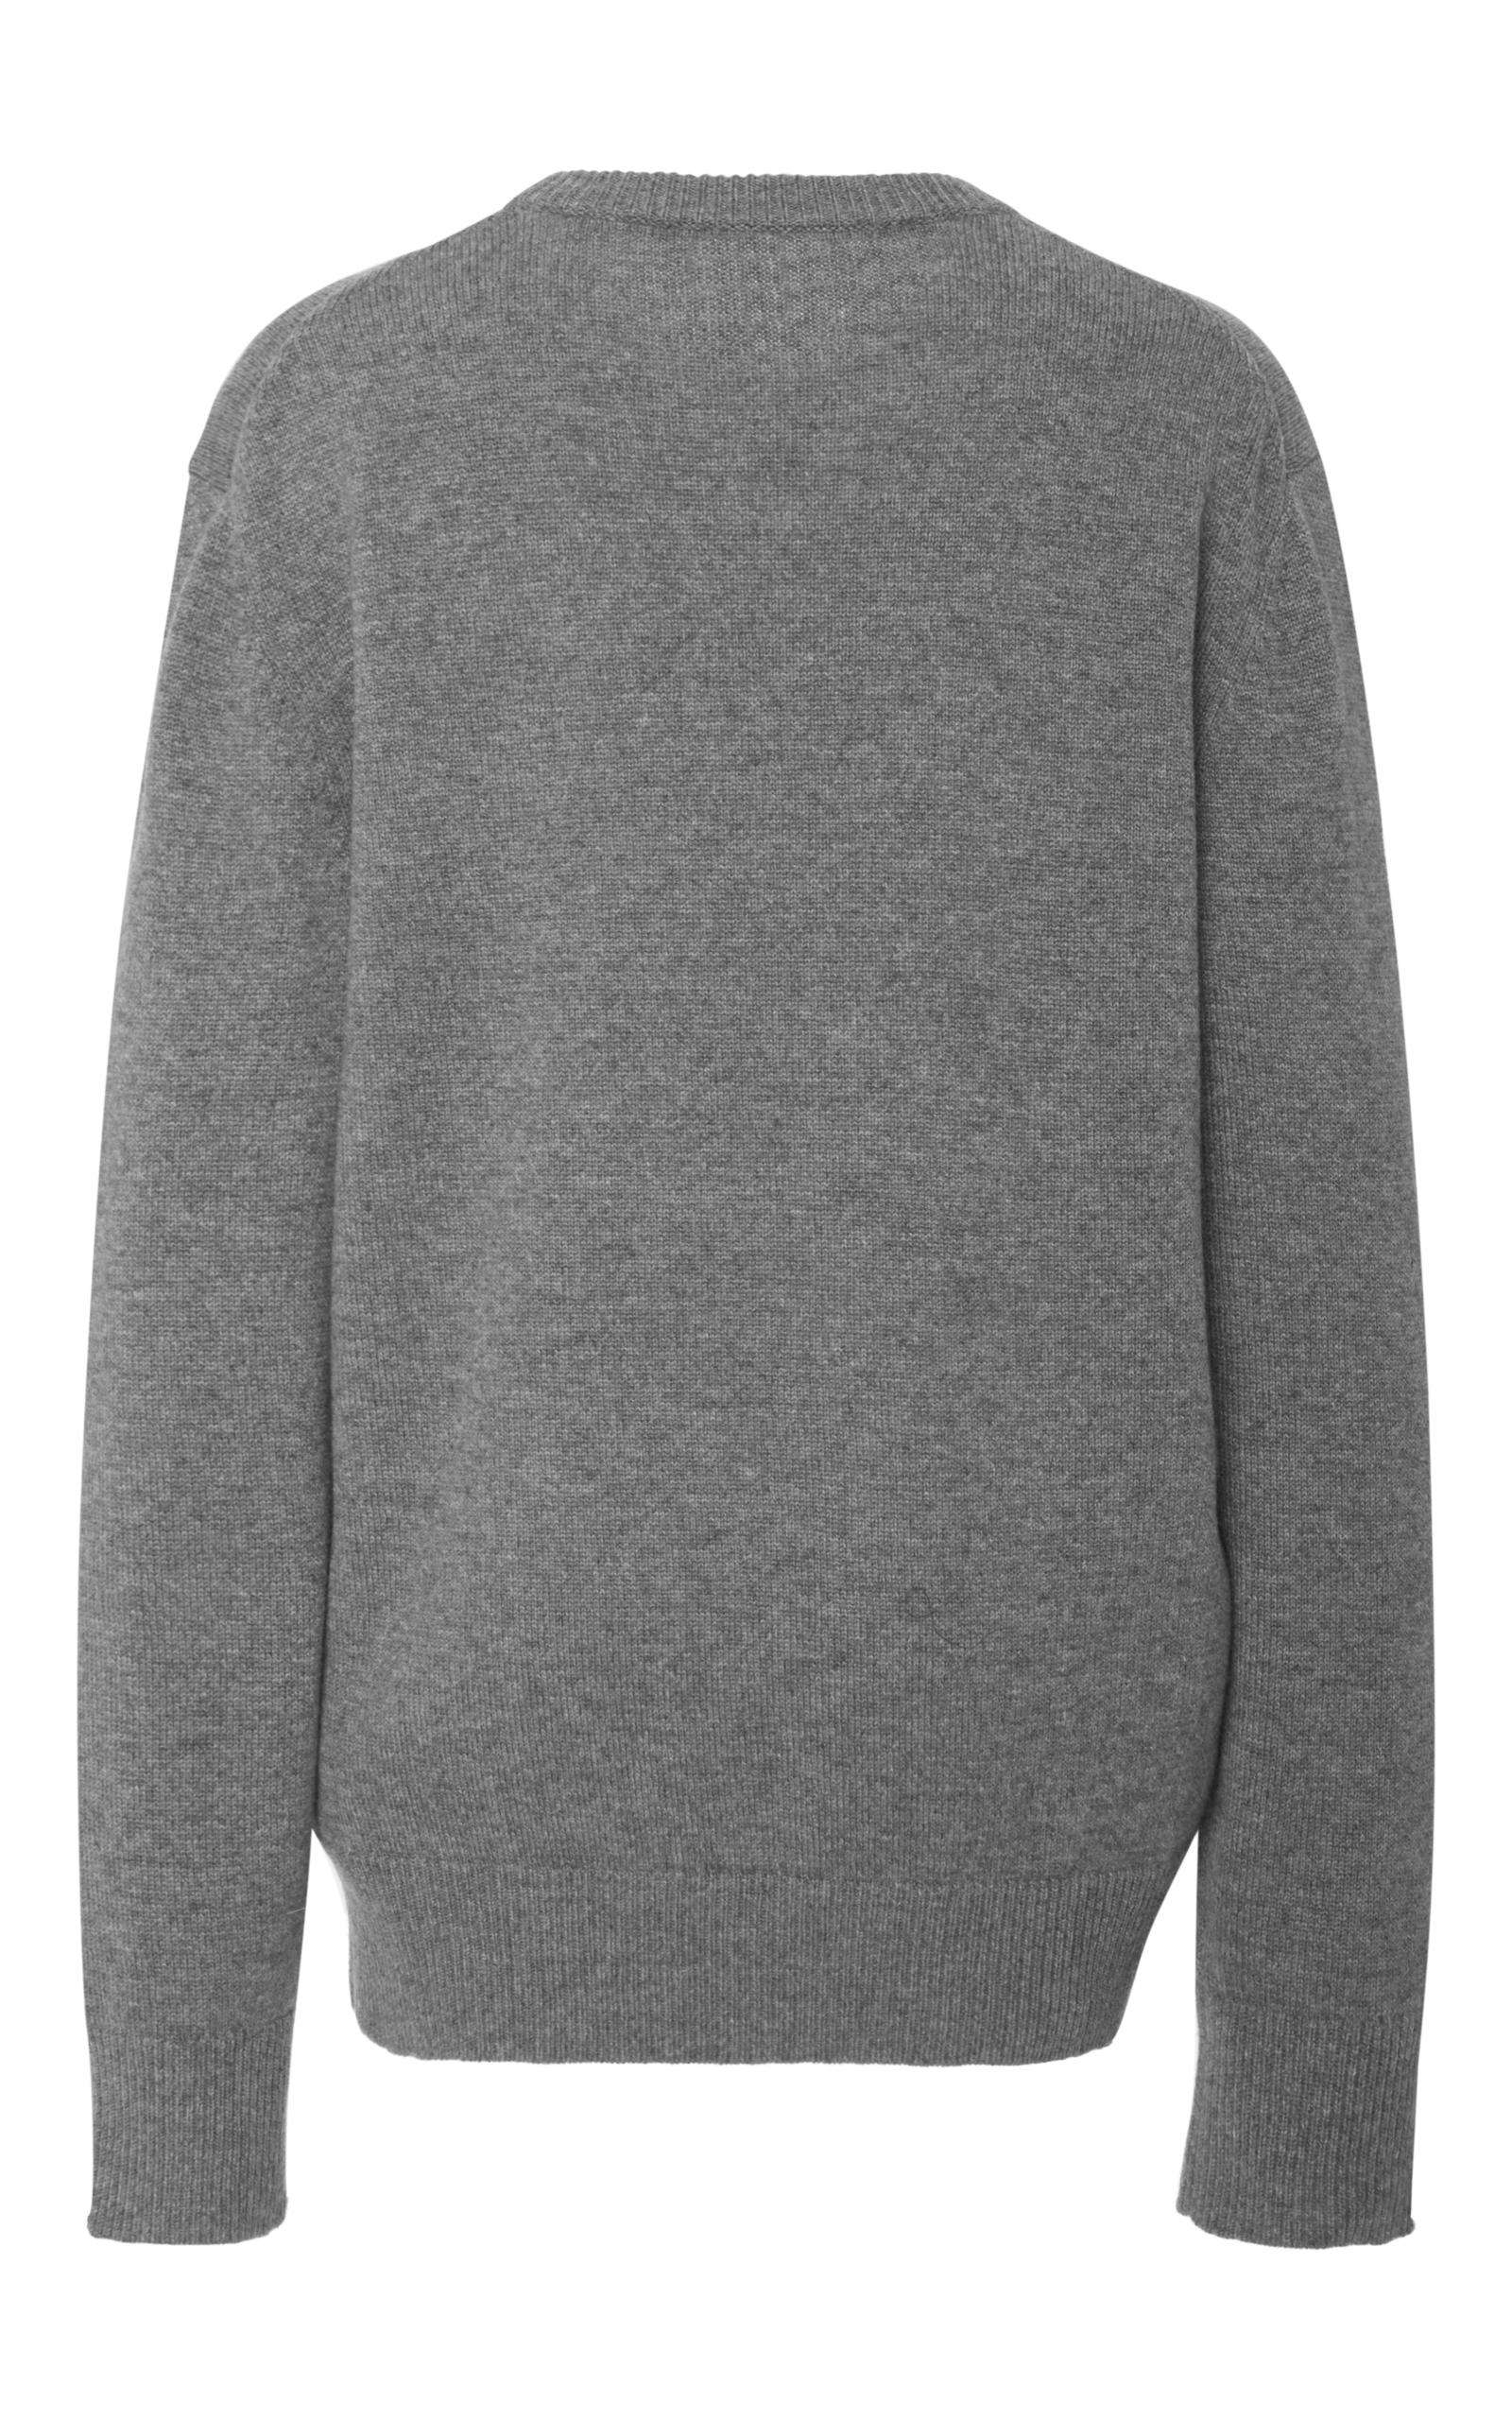 Michael Kors Cashmere Crewneck Top In Gray Lyst